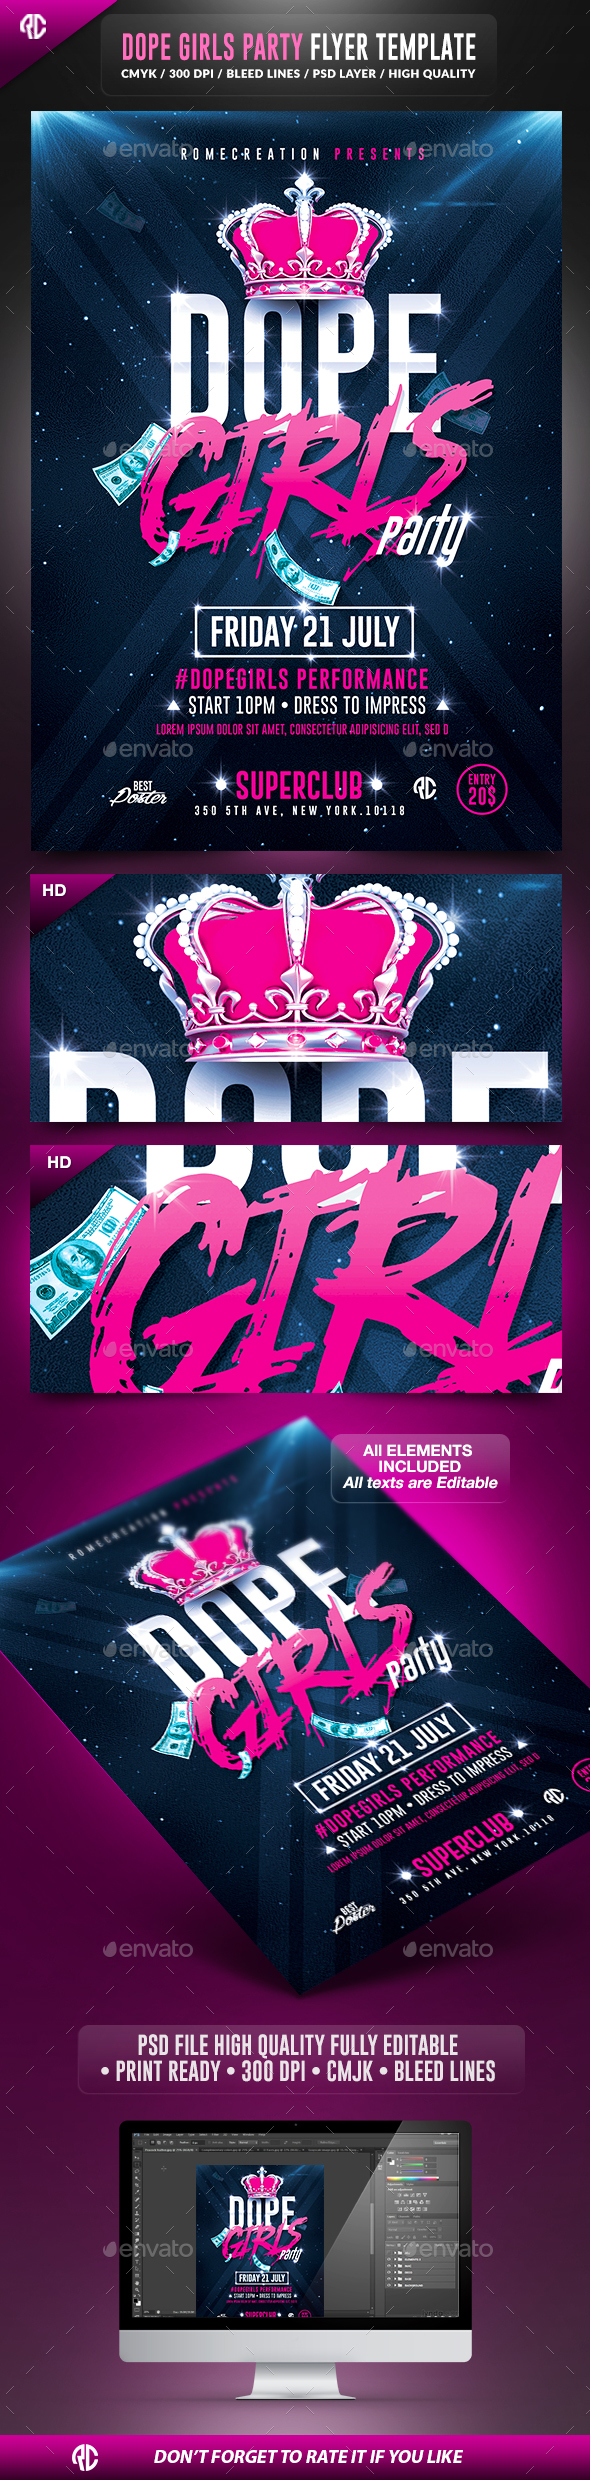 Dope Girls Pink Party | Psd Flyer Template - Clubs & Parties Events